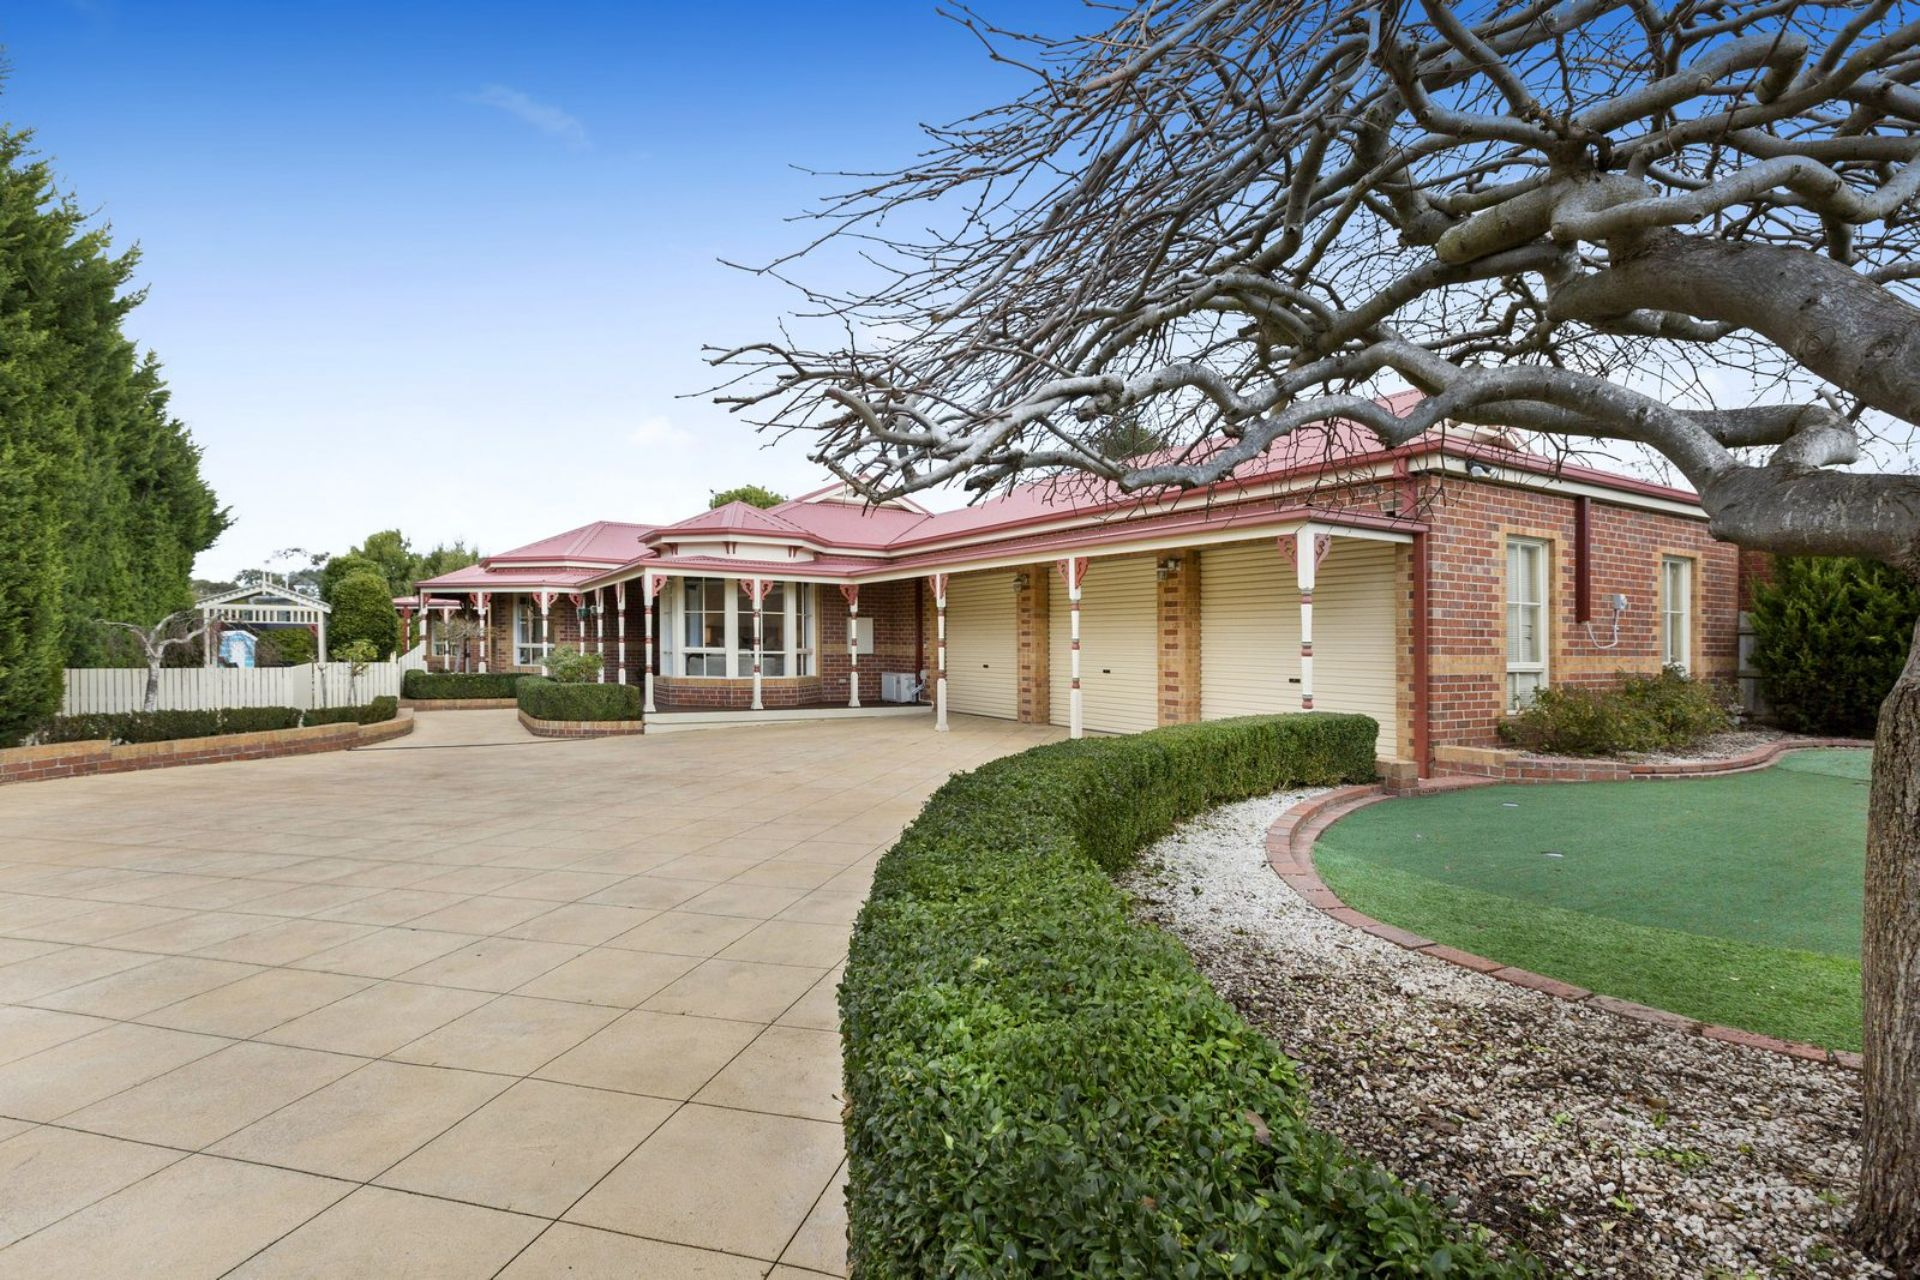 14 Boormanii Drive, MORNINGTON, VIC, 3931 - Image